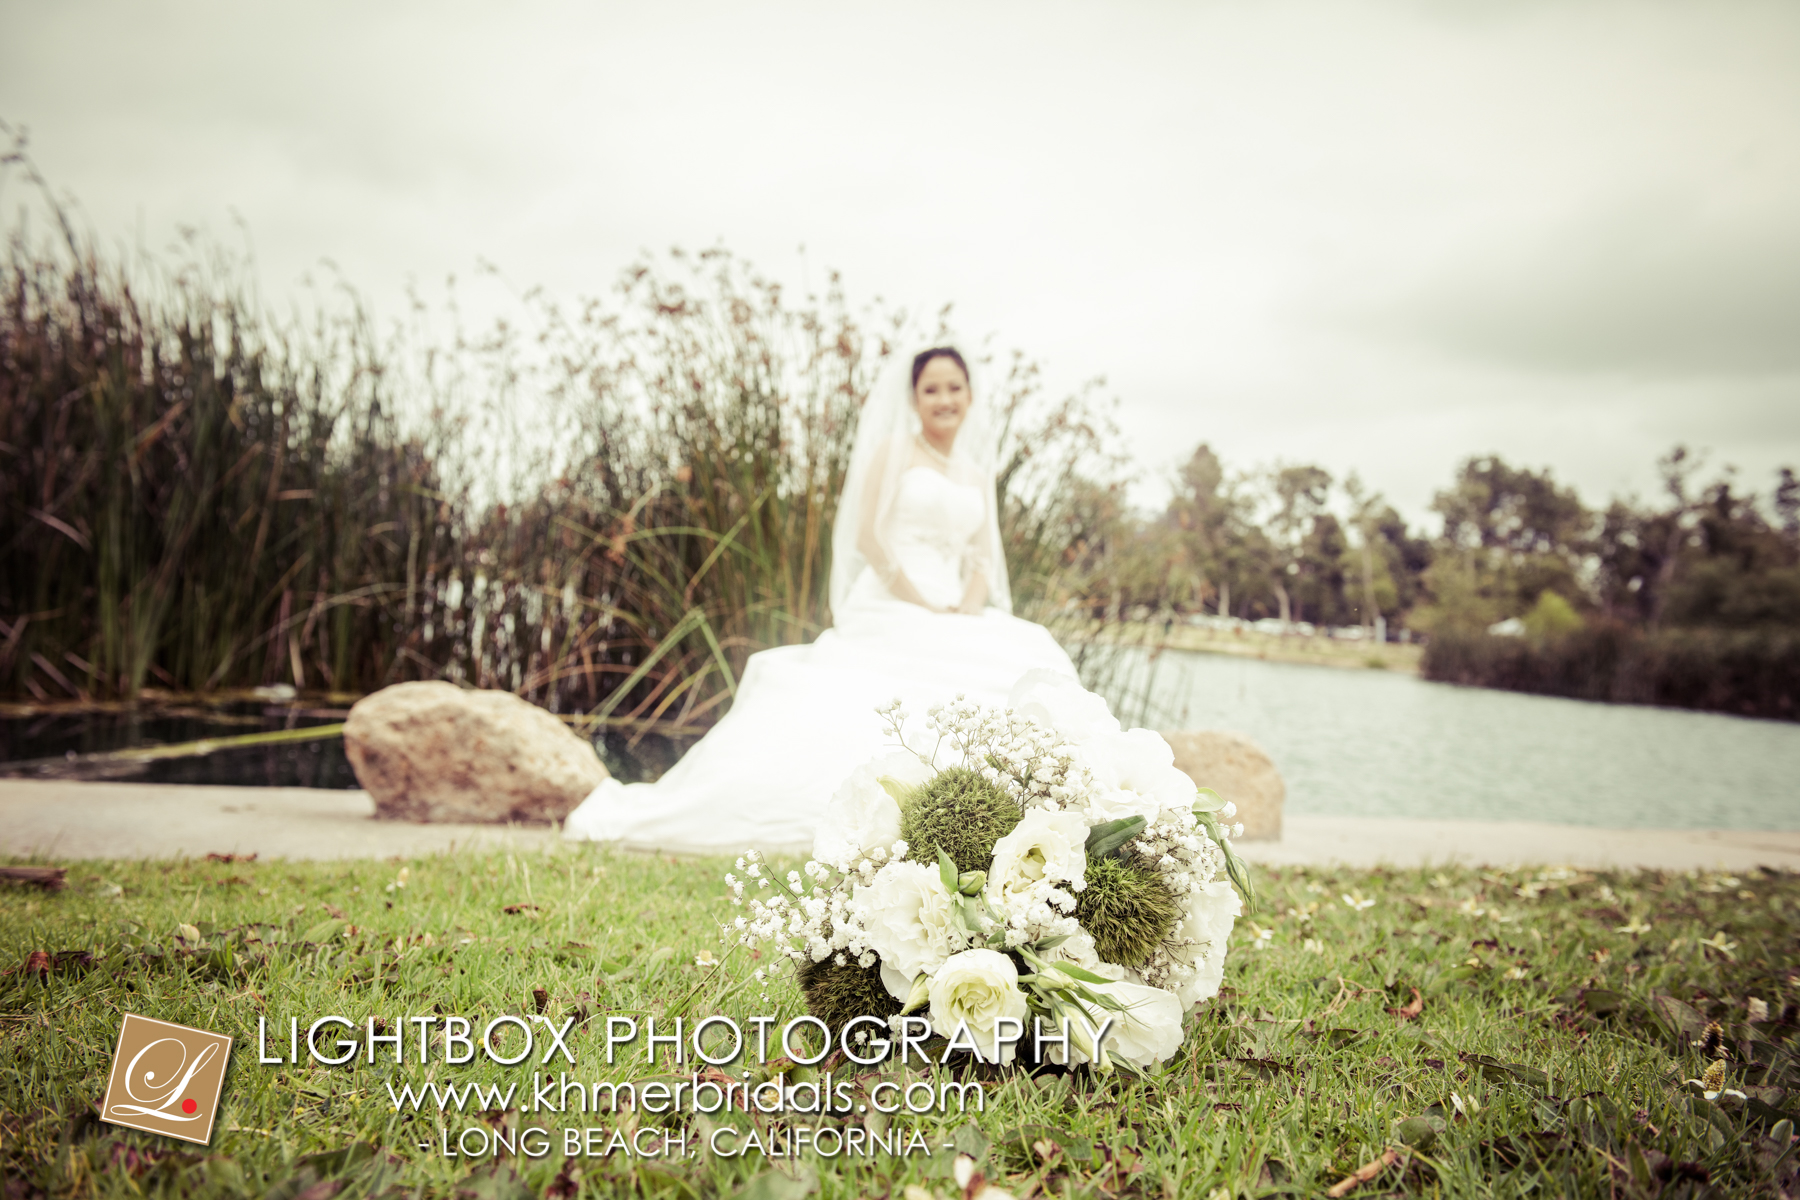 Apsara Khmer Bridal Wedding Photography and video-209.jpg